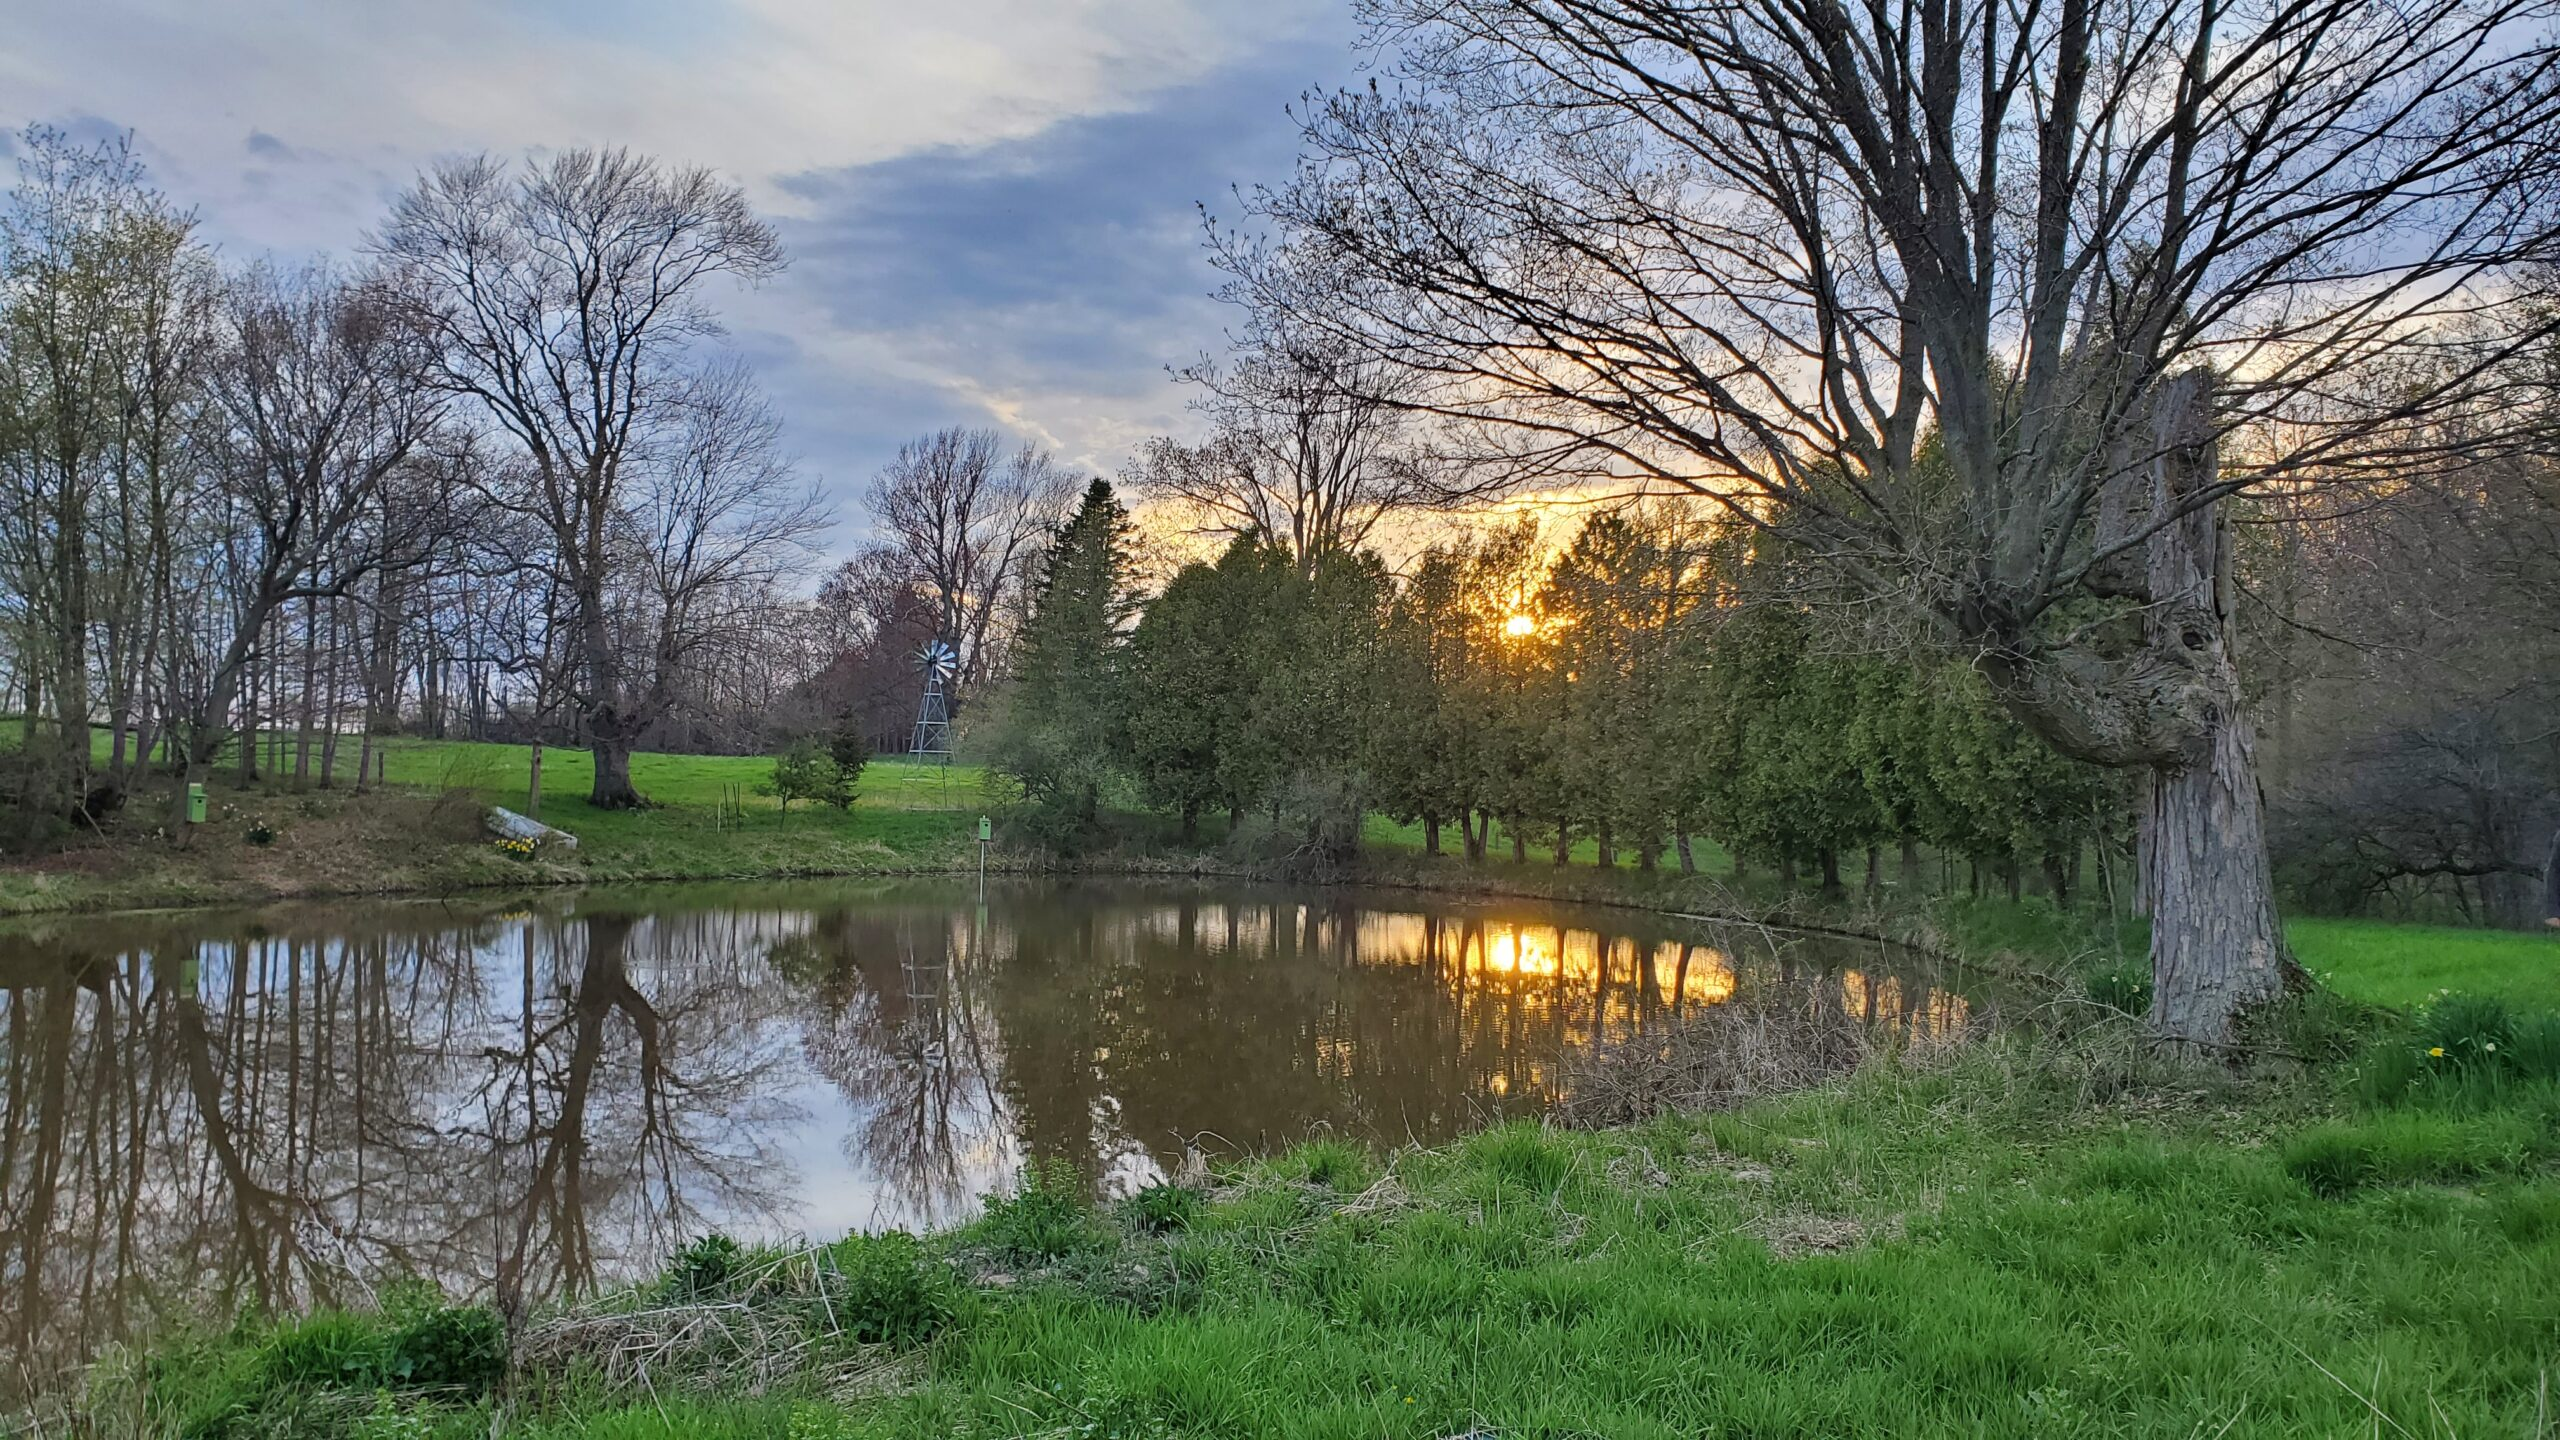 Voogt Farms - Sunset at the pond